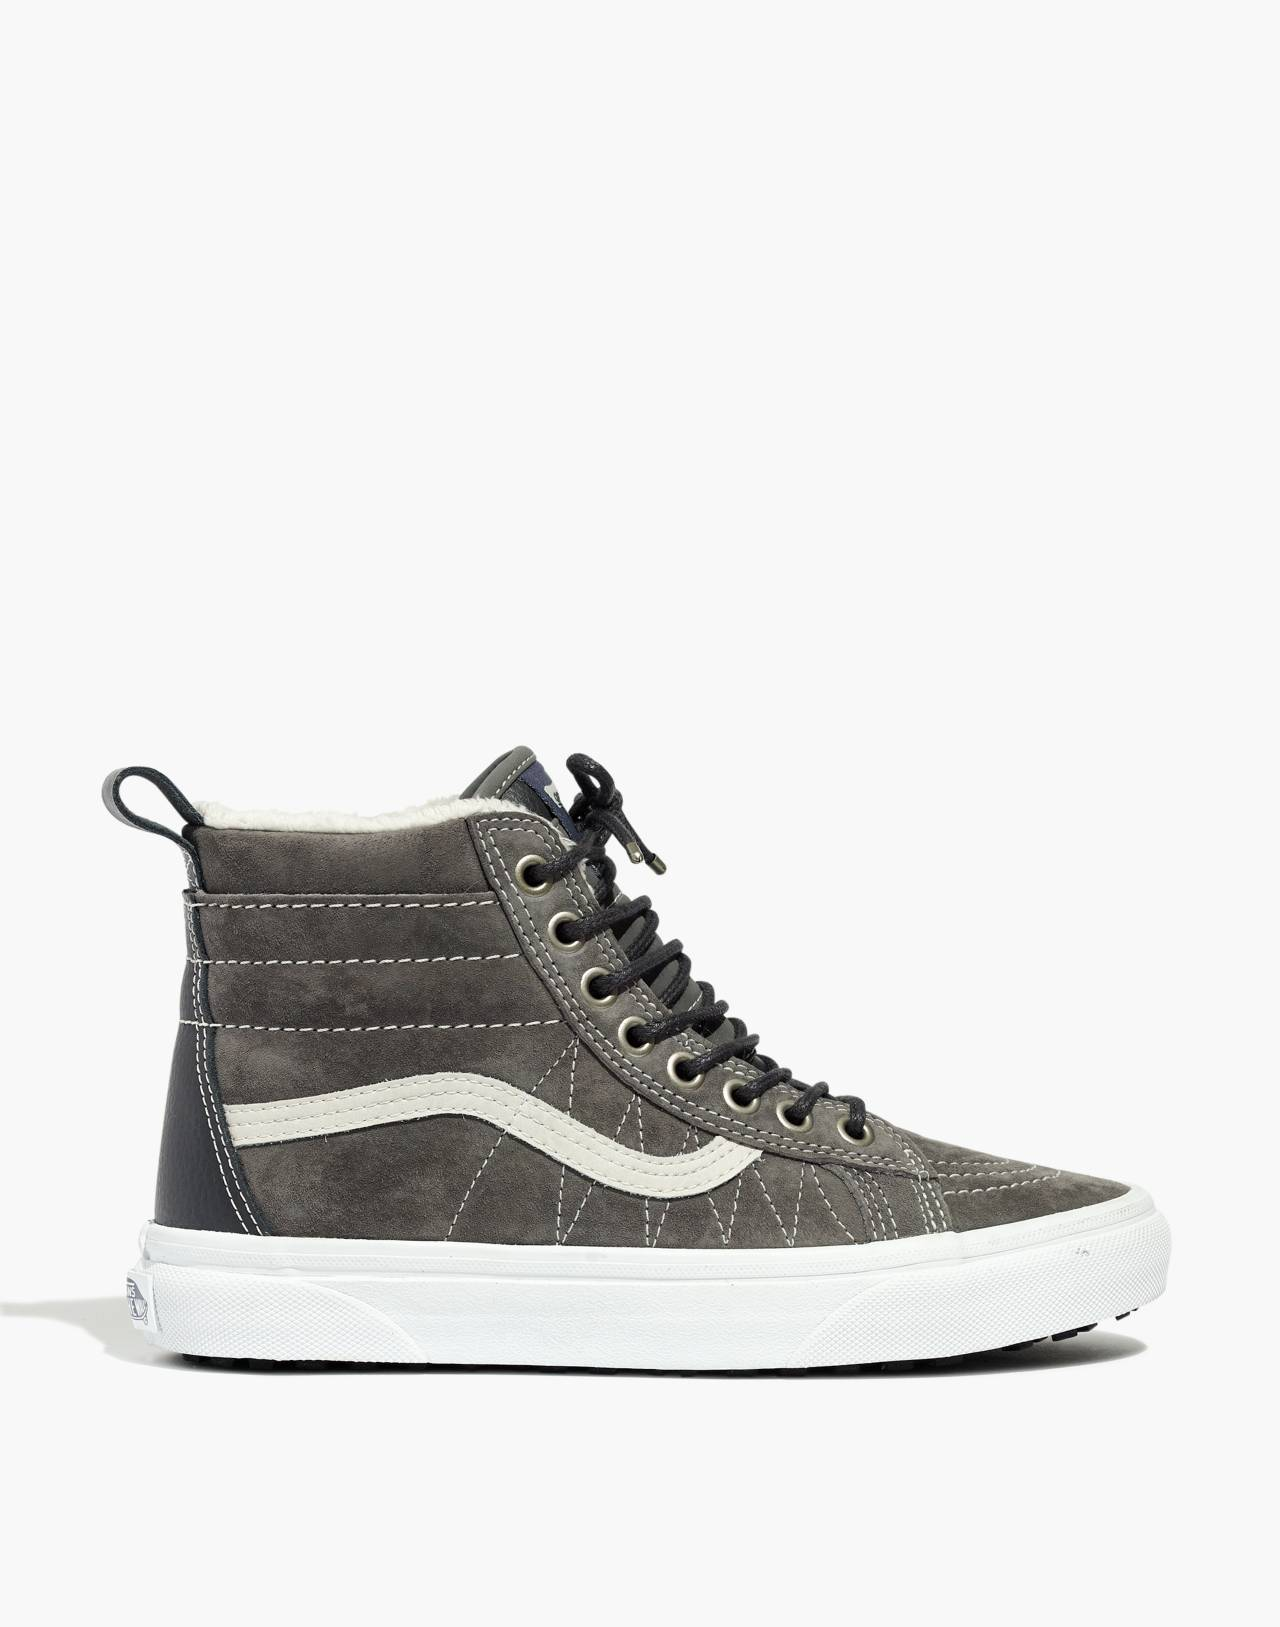 Vans® Unisex Sk8-Hi MTE High-Top Sneakers in Suede in pewter asphalt image 2